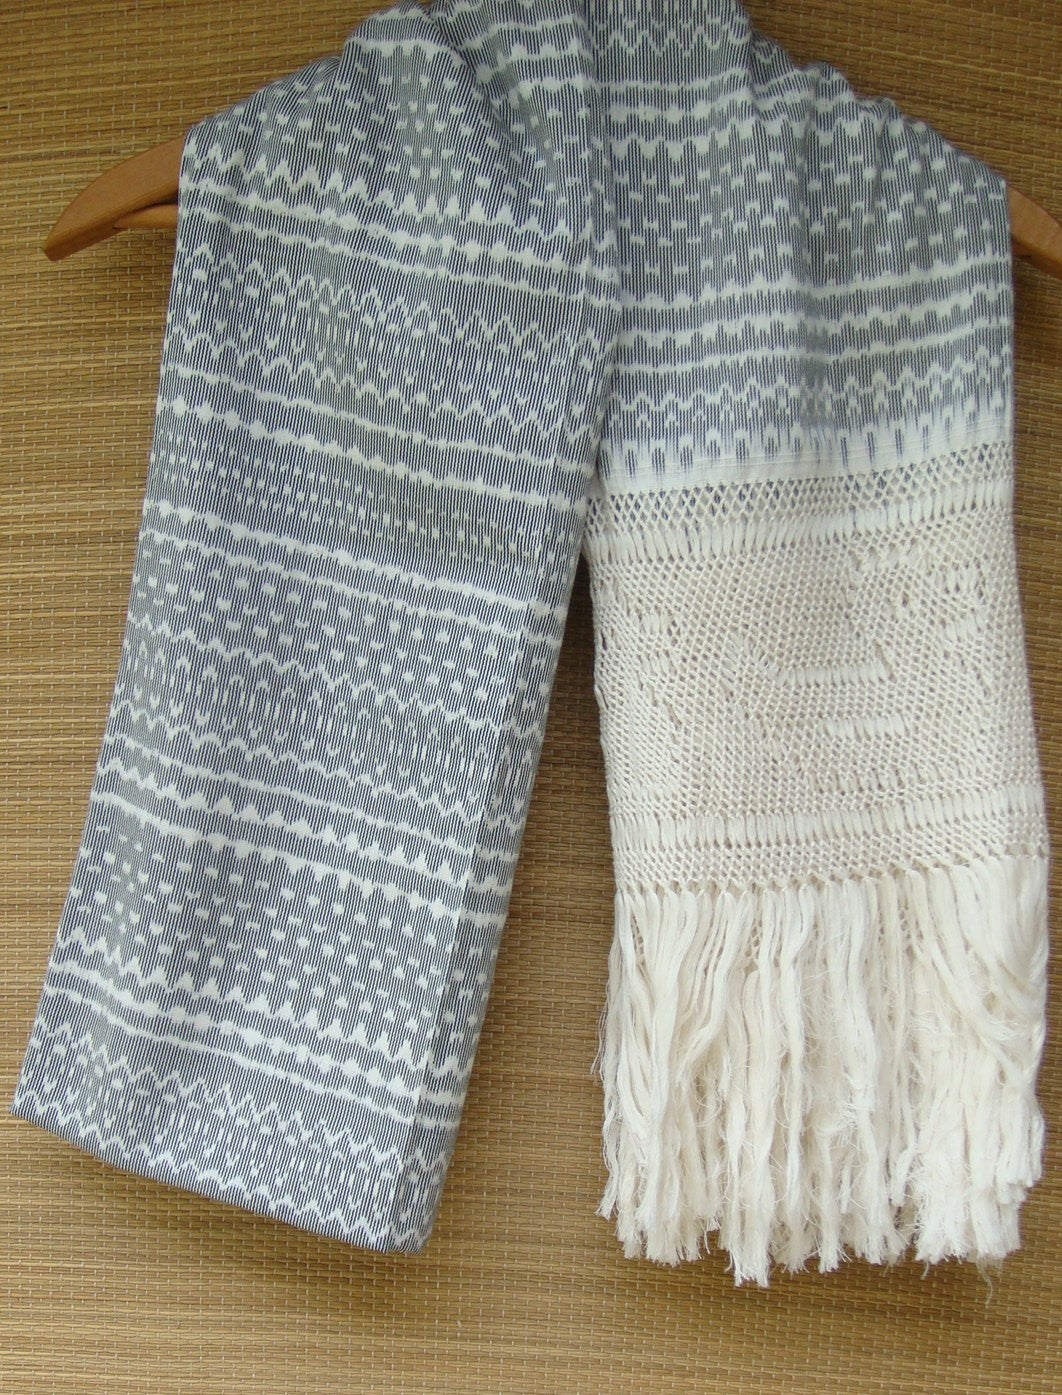 Classic Rebozo Shawl From Tenancingo Mexico with Aztec Ikat Pattern